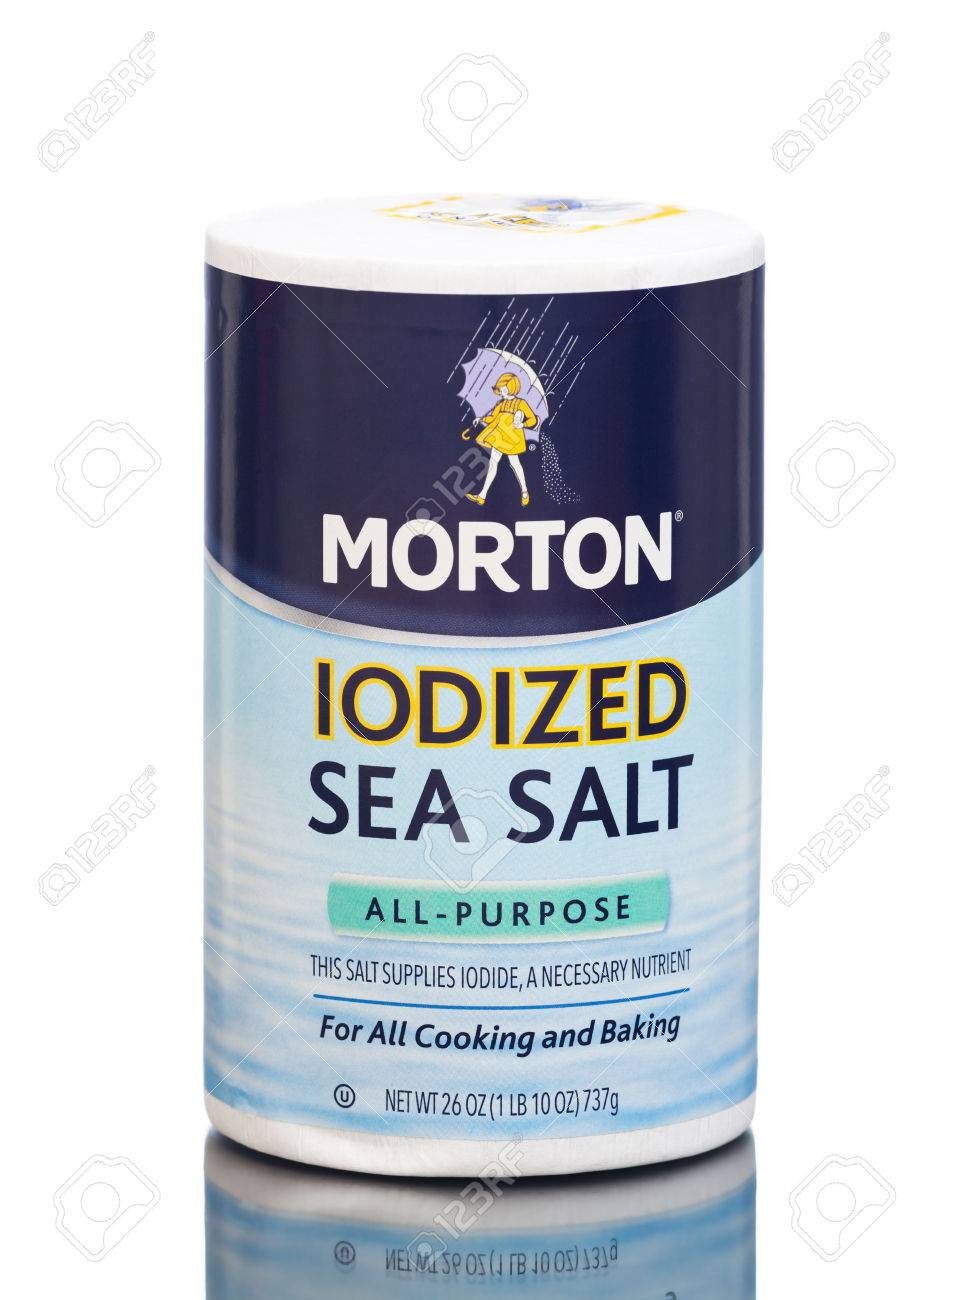 MIAMI, USA - March 30, 2015: A package of Morton Salt Iodized